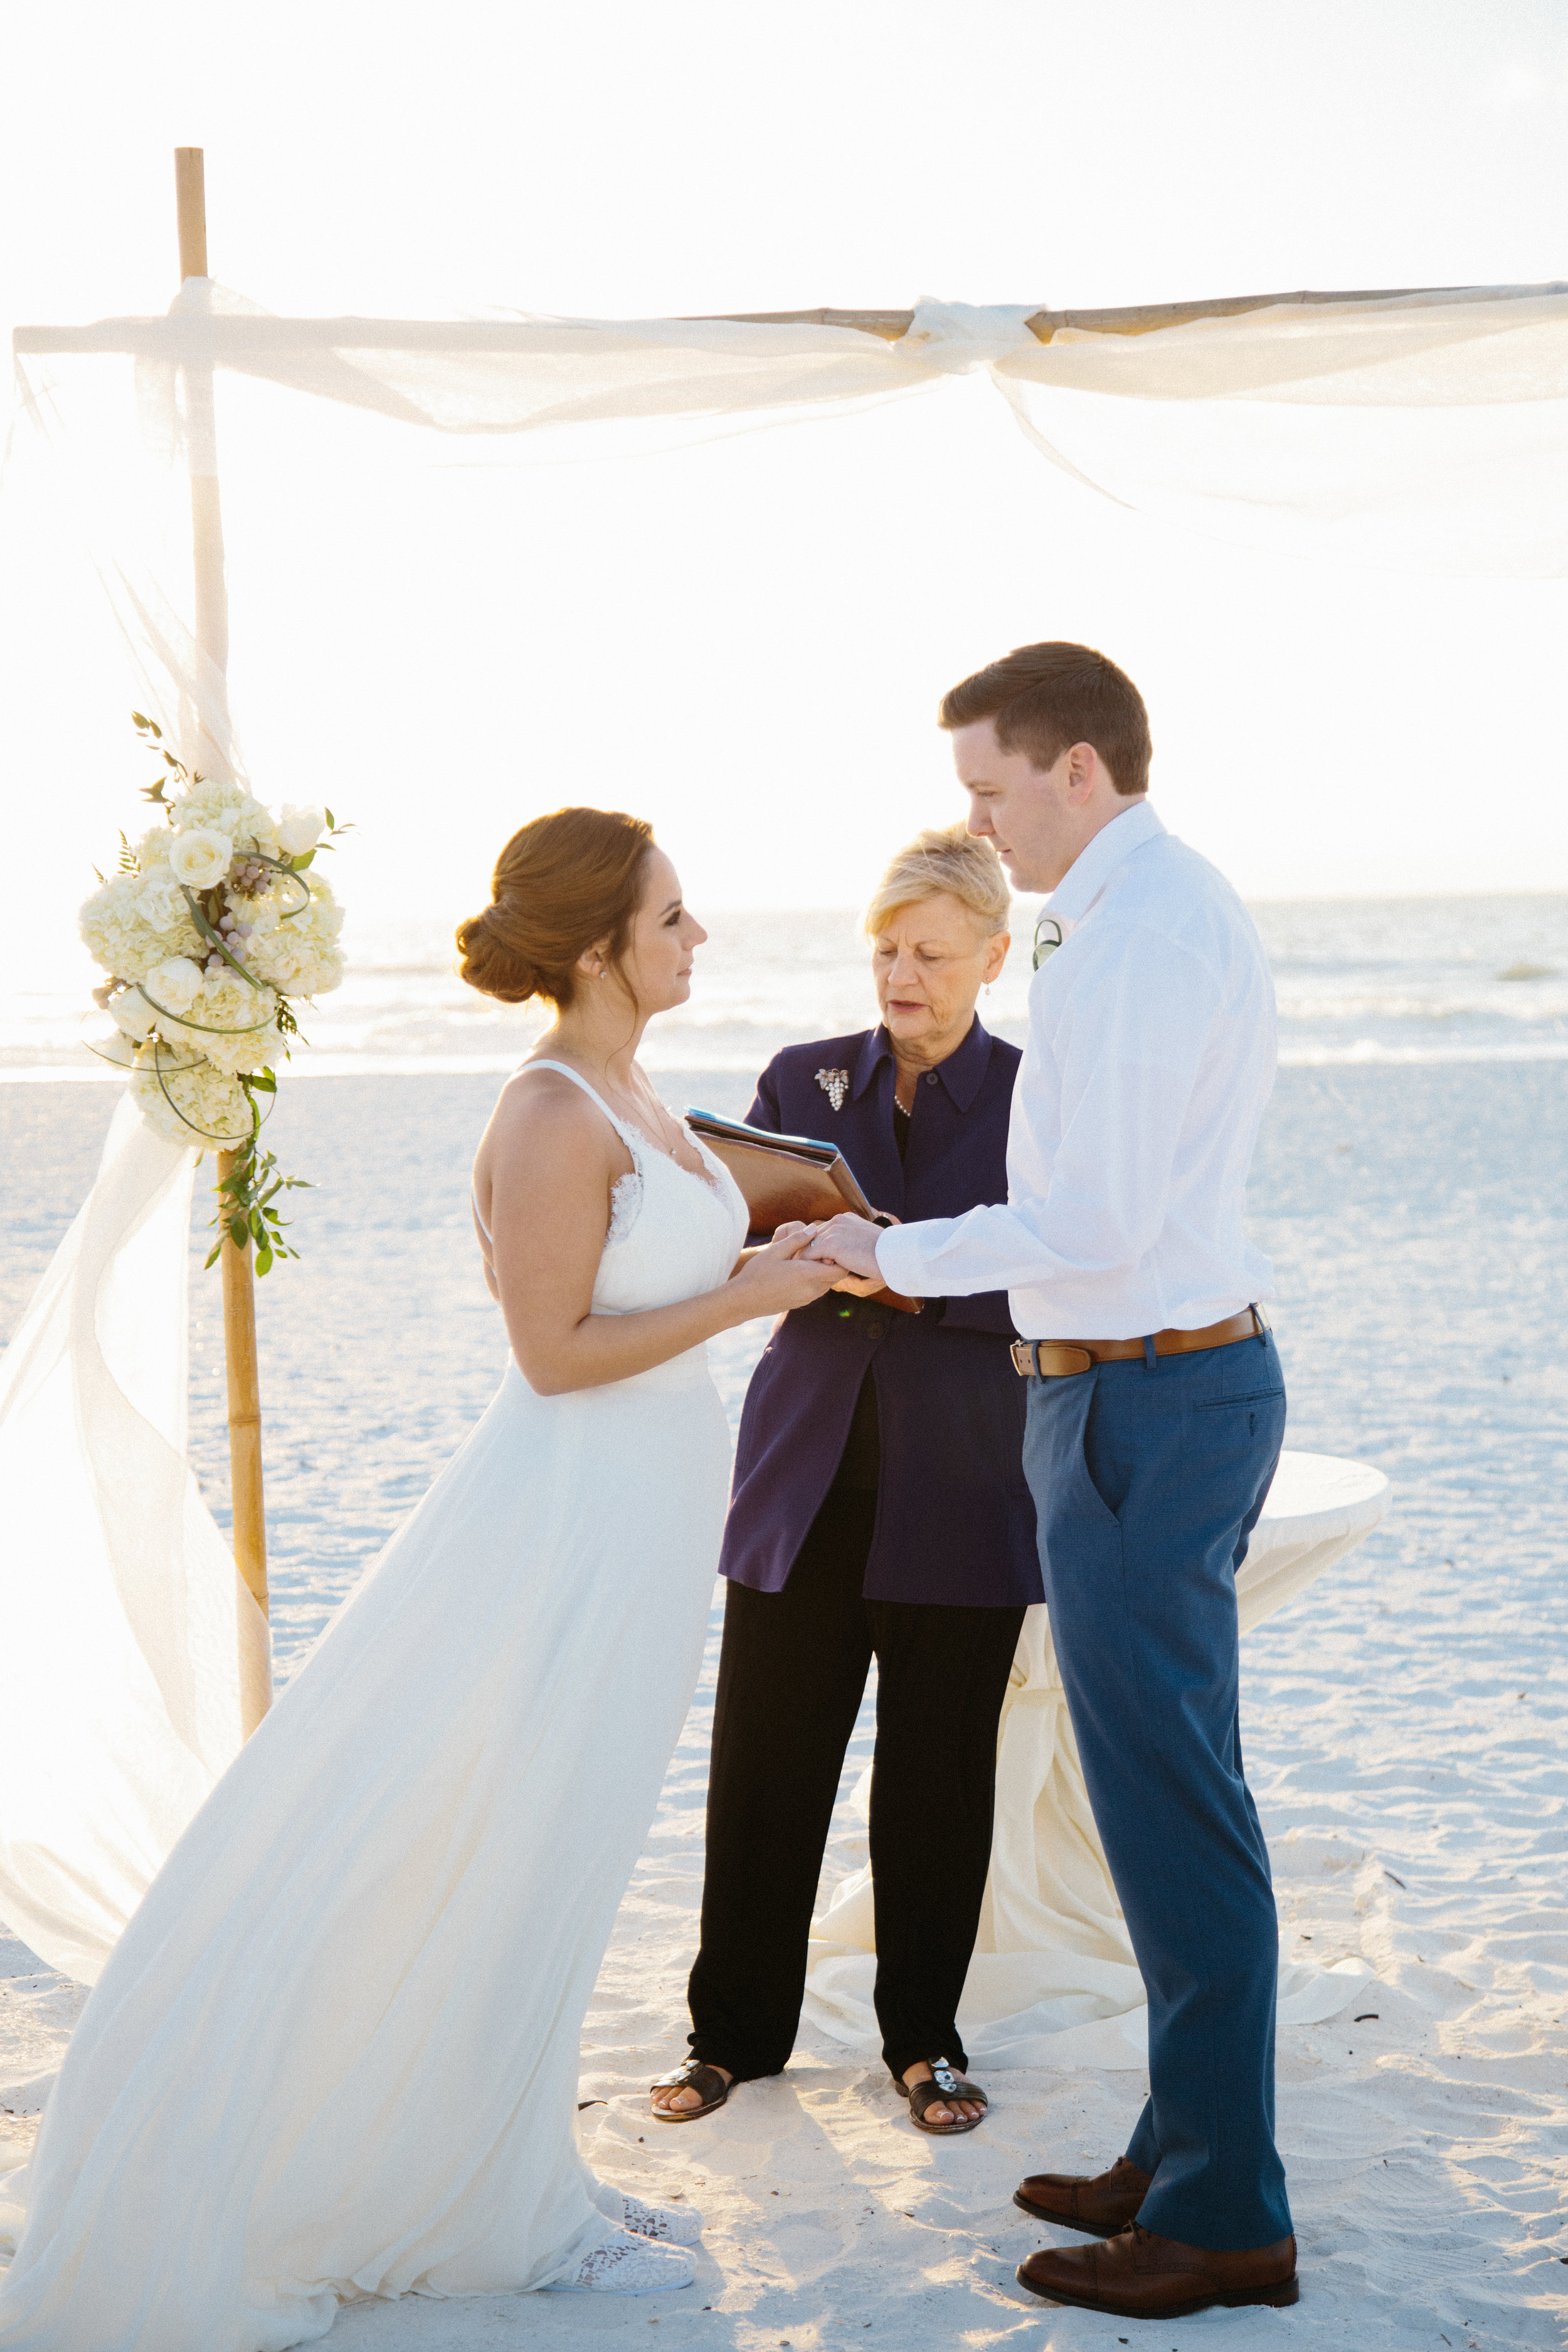 Beautiful, sunny, and intimate Florida beach wedding at Sunset. Documentary Wedding photographer for the genuine couple in love.